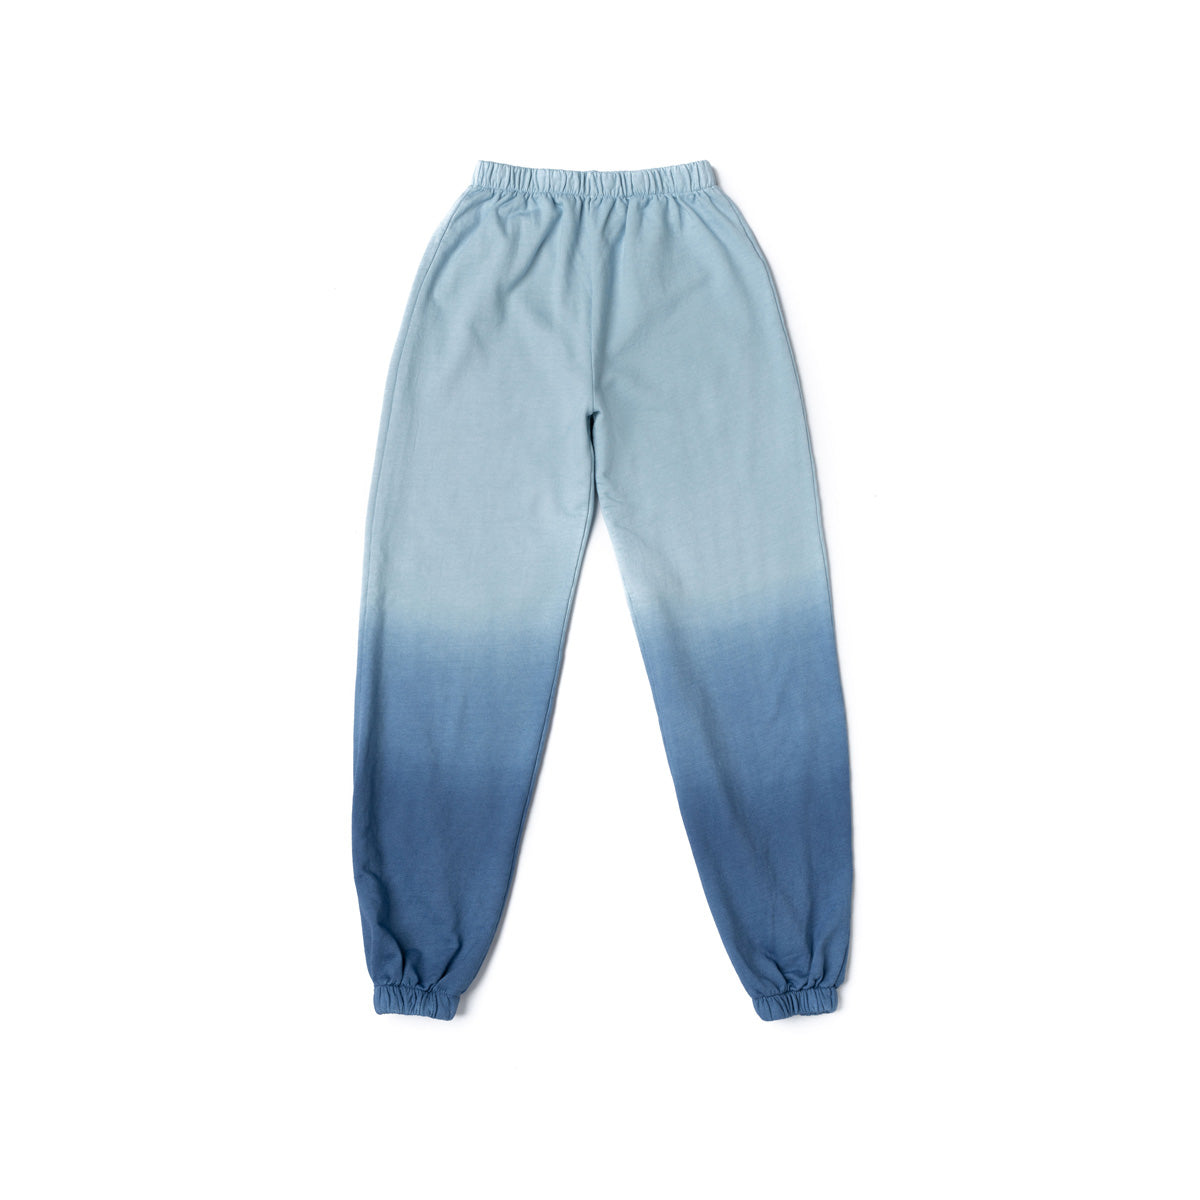 Women's Blue Ombre Tie Dye Sweatpants